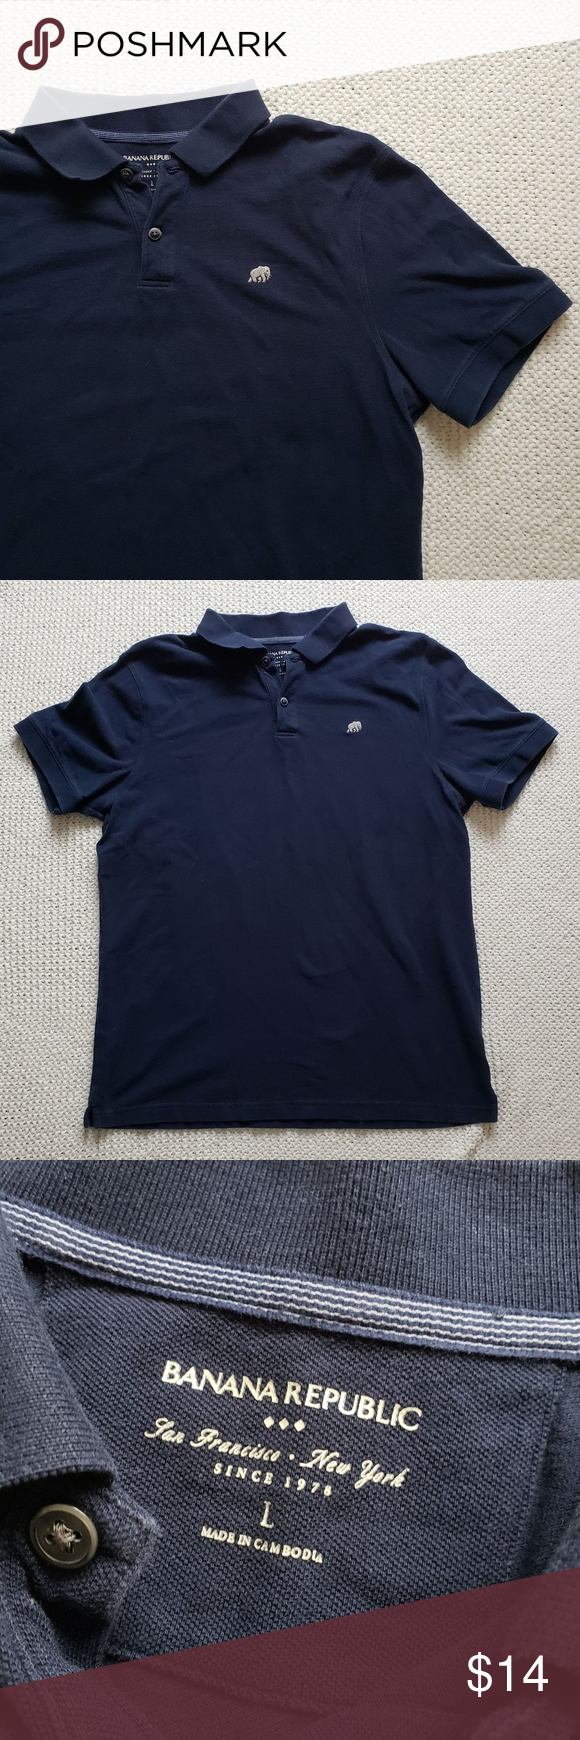 b895e5a5c Banana Republic Navy Pique Polo Banana Republic Factory classic navy pique  polo. Small side slits and elephant embroidered emblem.